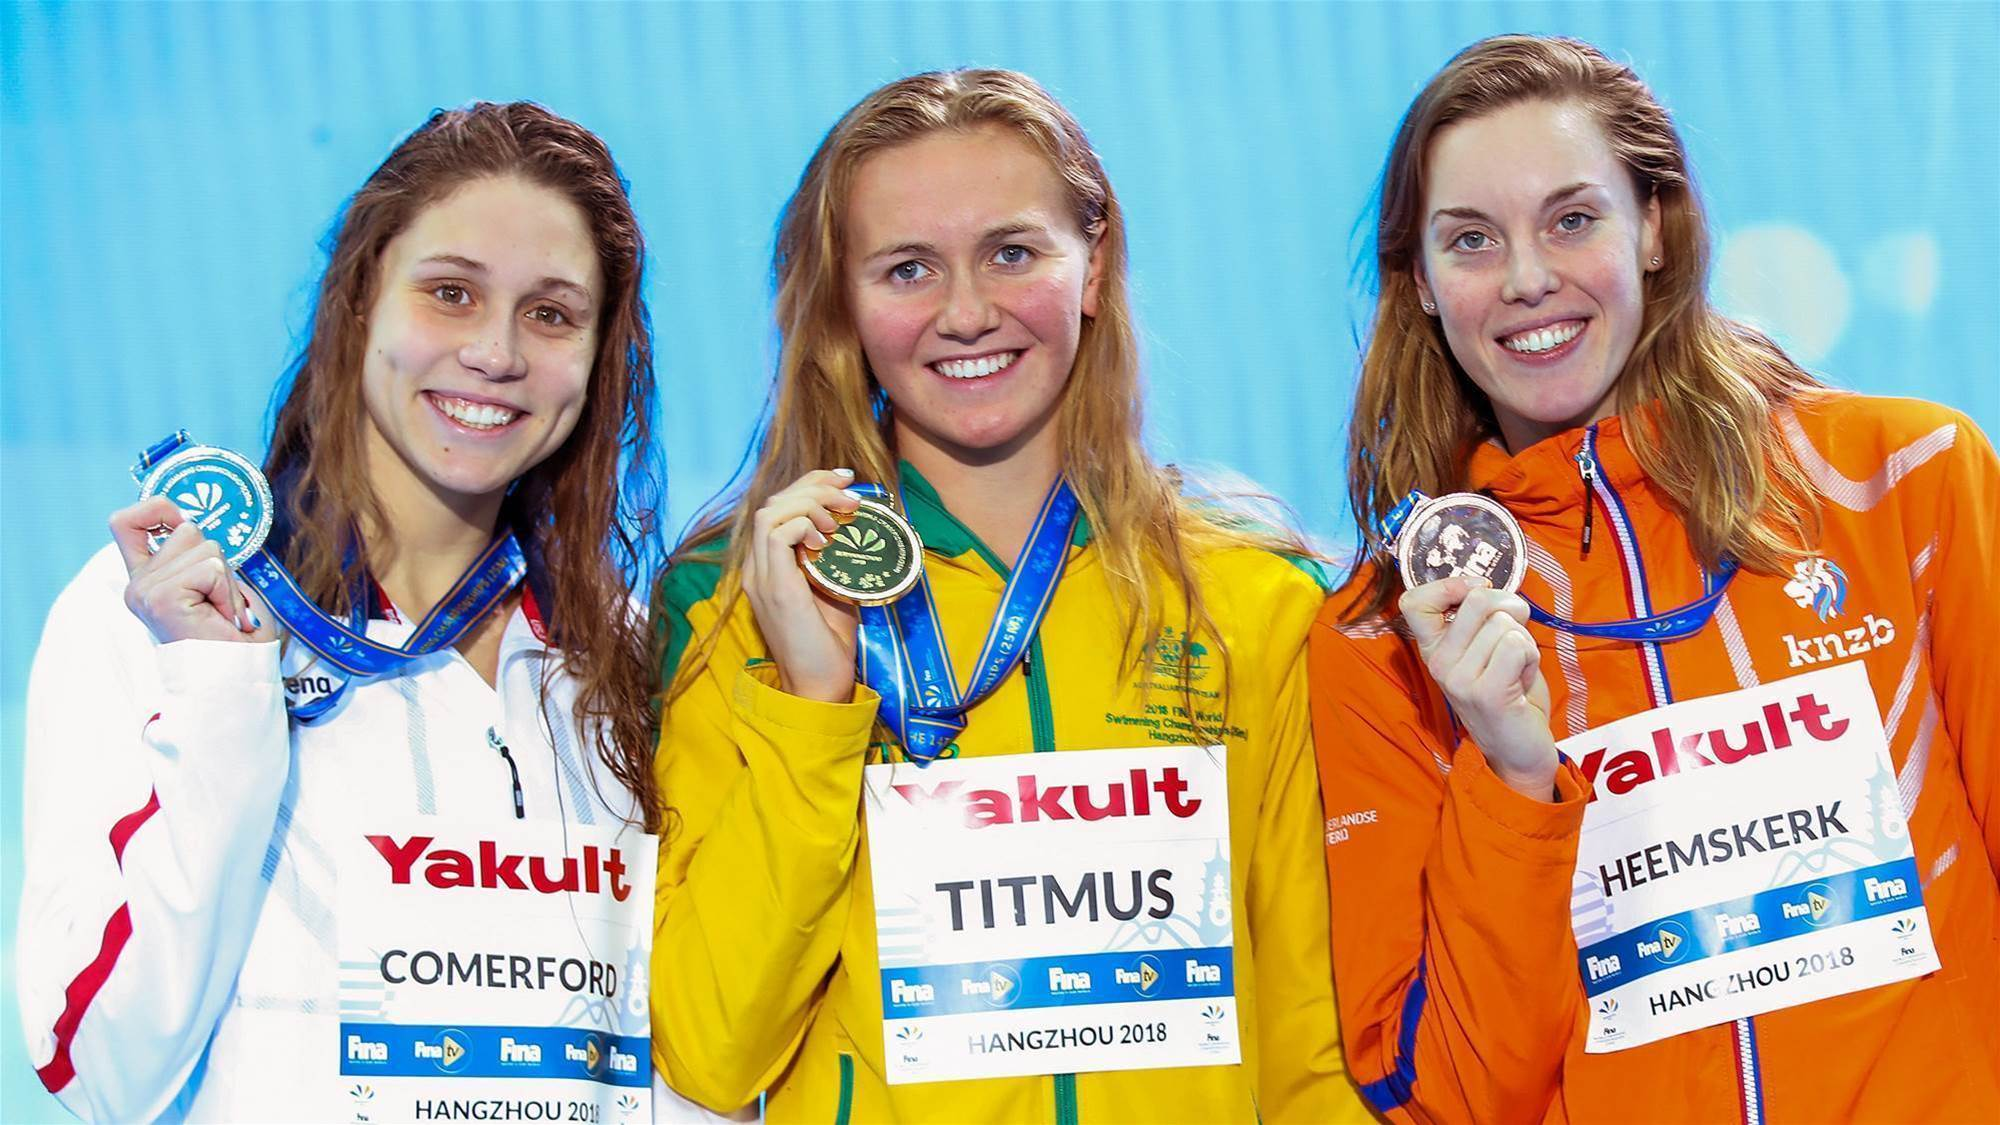 Golden start for Titmus in China